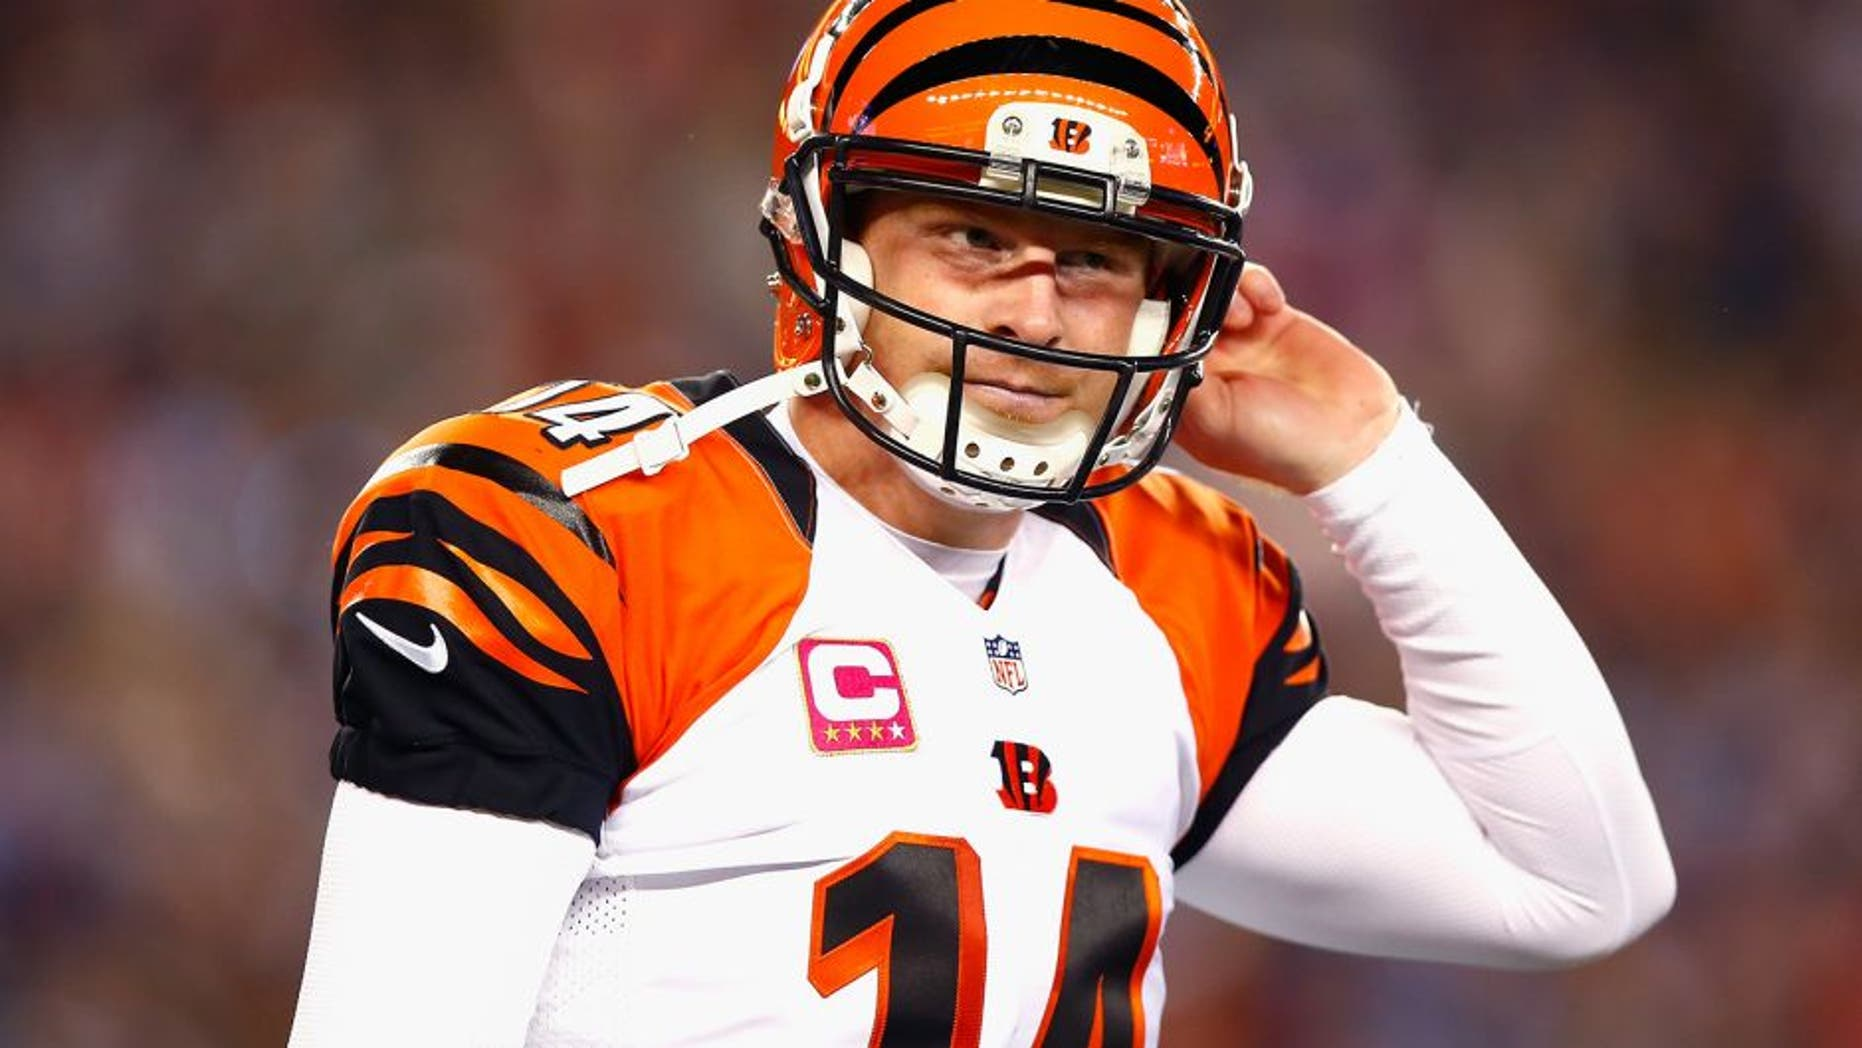 FOXBORO, MA - OCTOBER 05: Andy Dalton #14 of the Cincinnati Bengals reacts during the second quarter against the New England Patriots at Gillette Stadium on October 5, 2014 in Foxboro, Massachusetts. (Photo by Jared Wickerham/Getty Images)